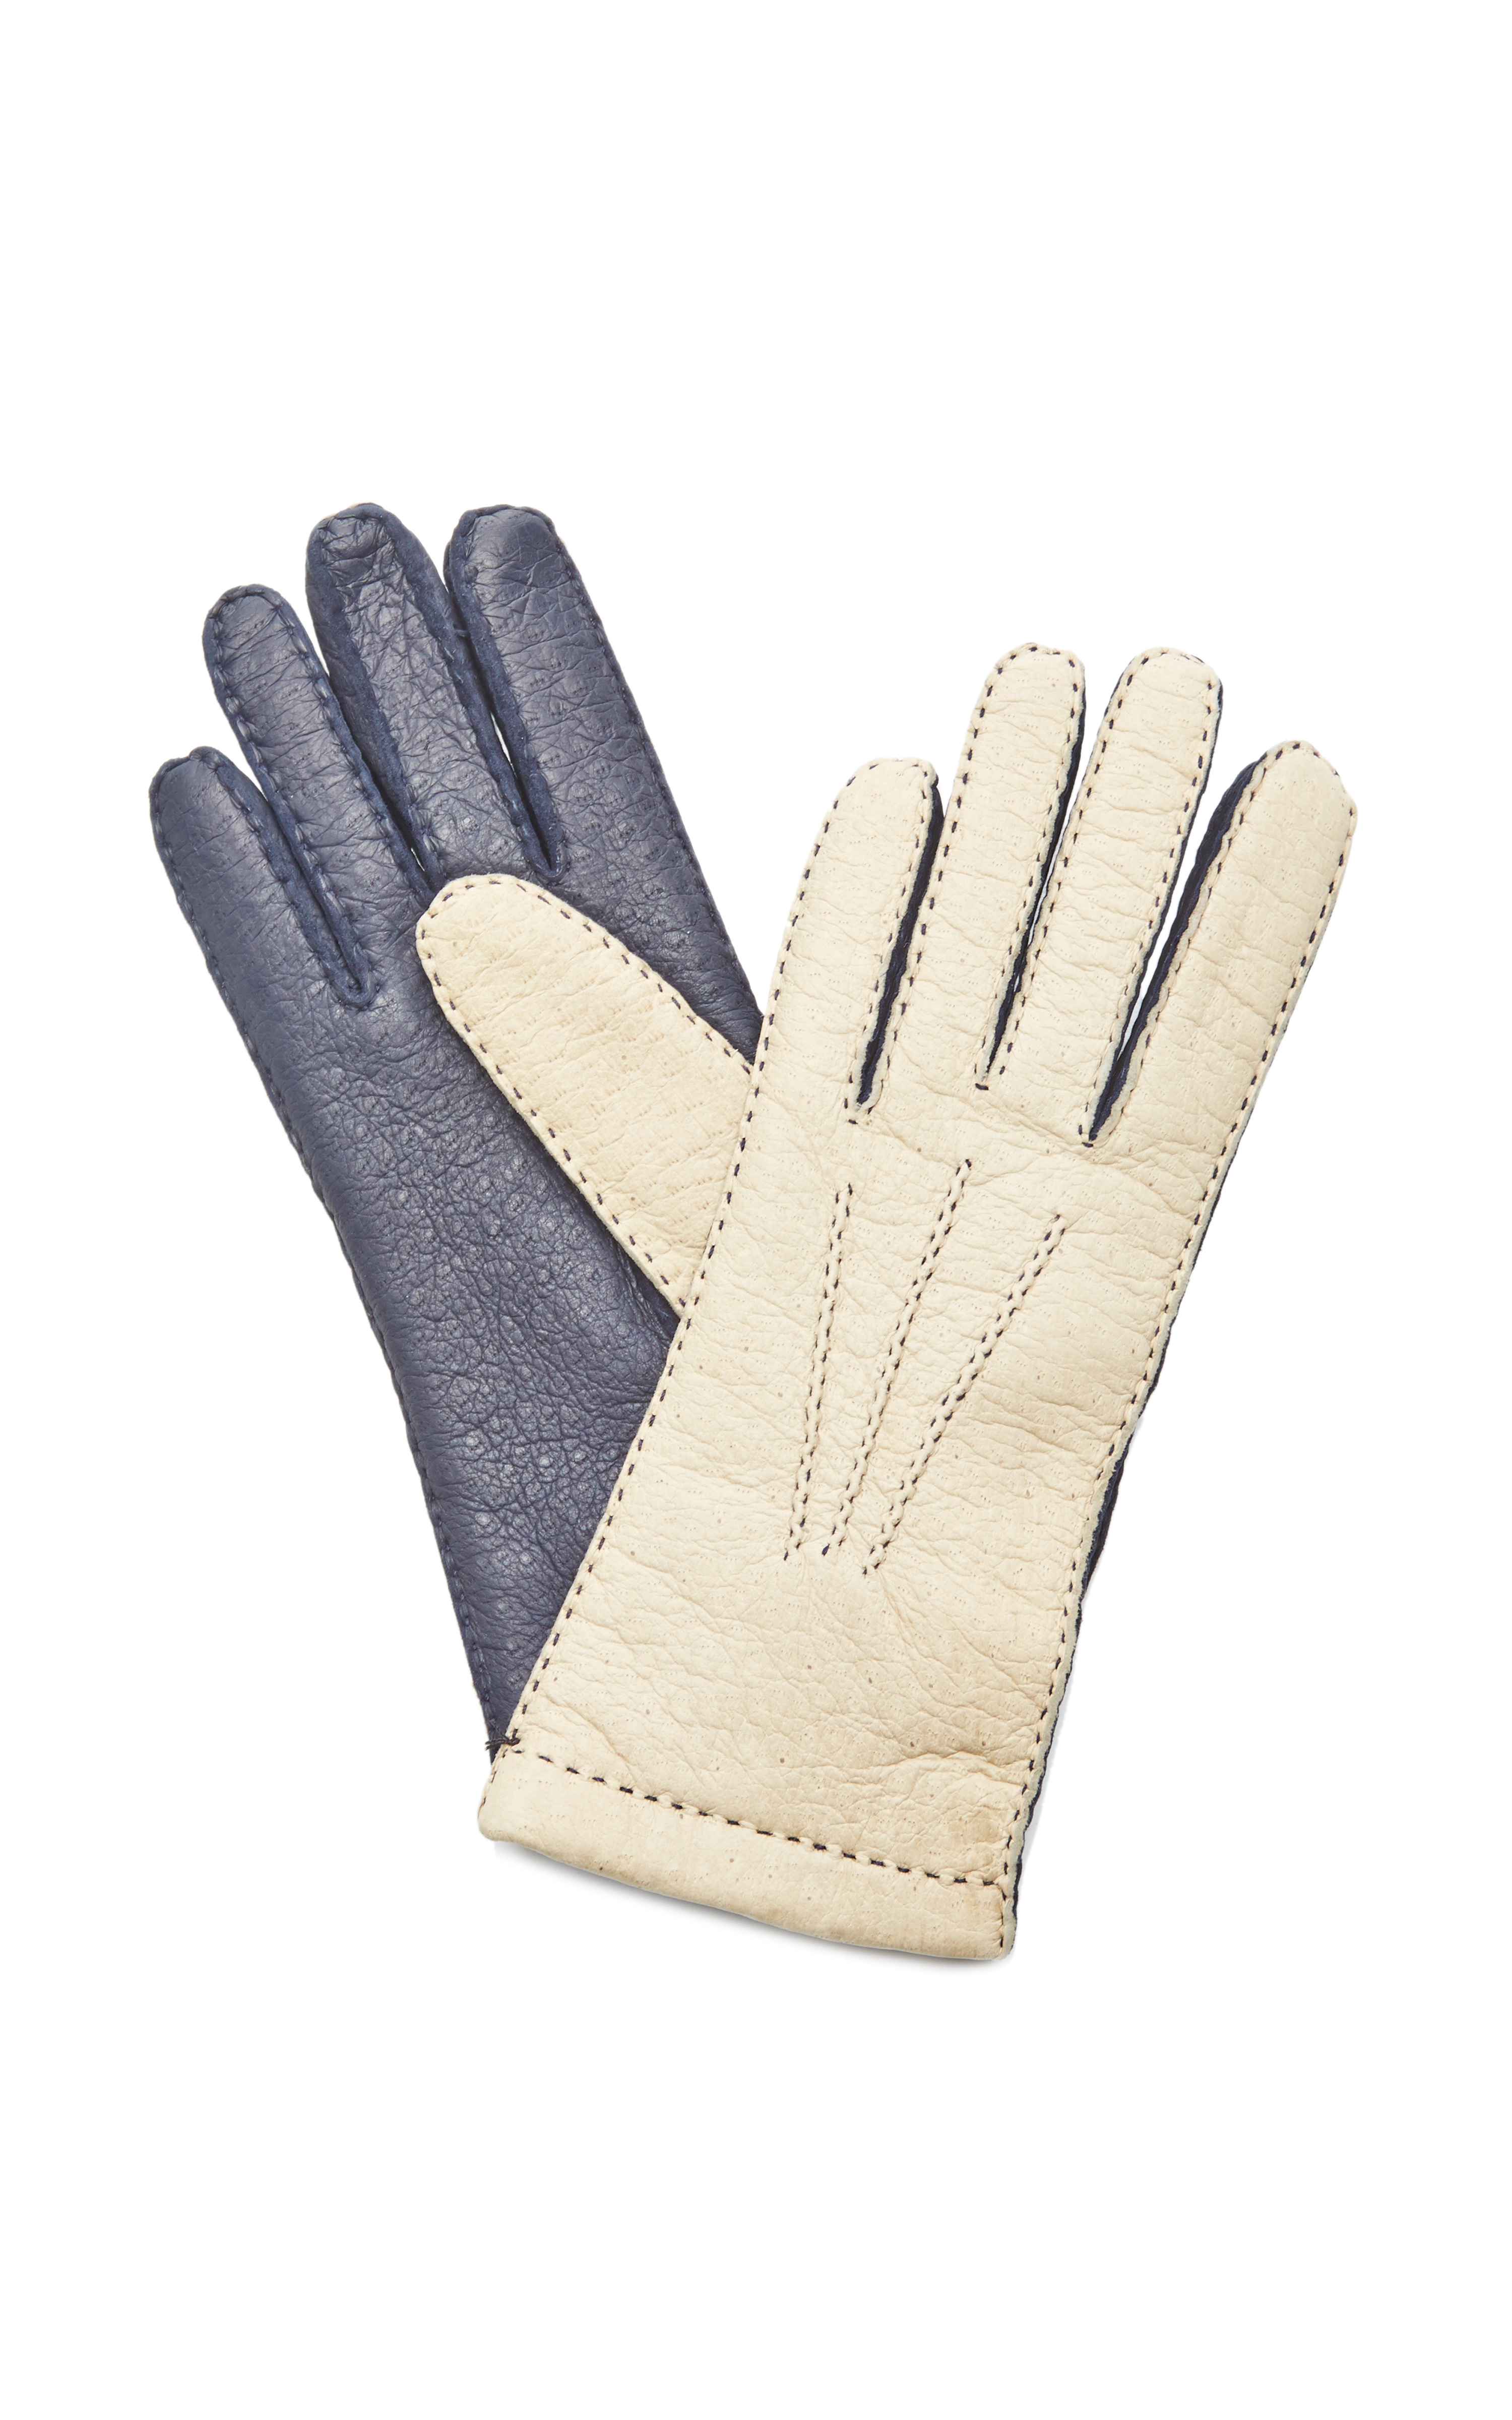 Womens beige leather gloves - Gallery Previously Sold At Moda Operandi Women S Leather Gloves